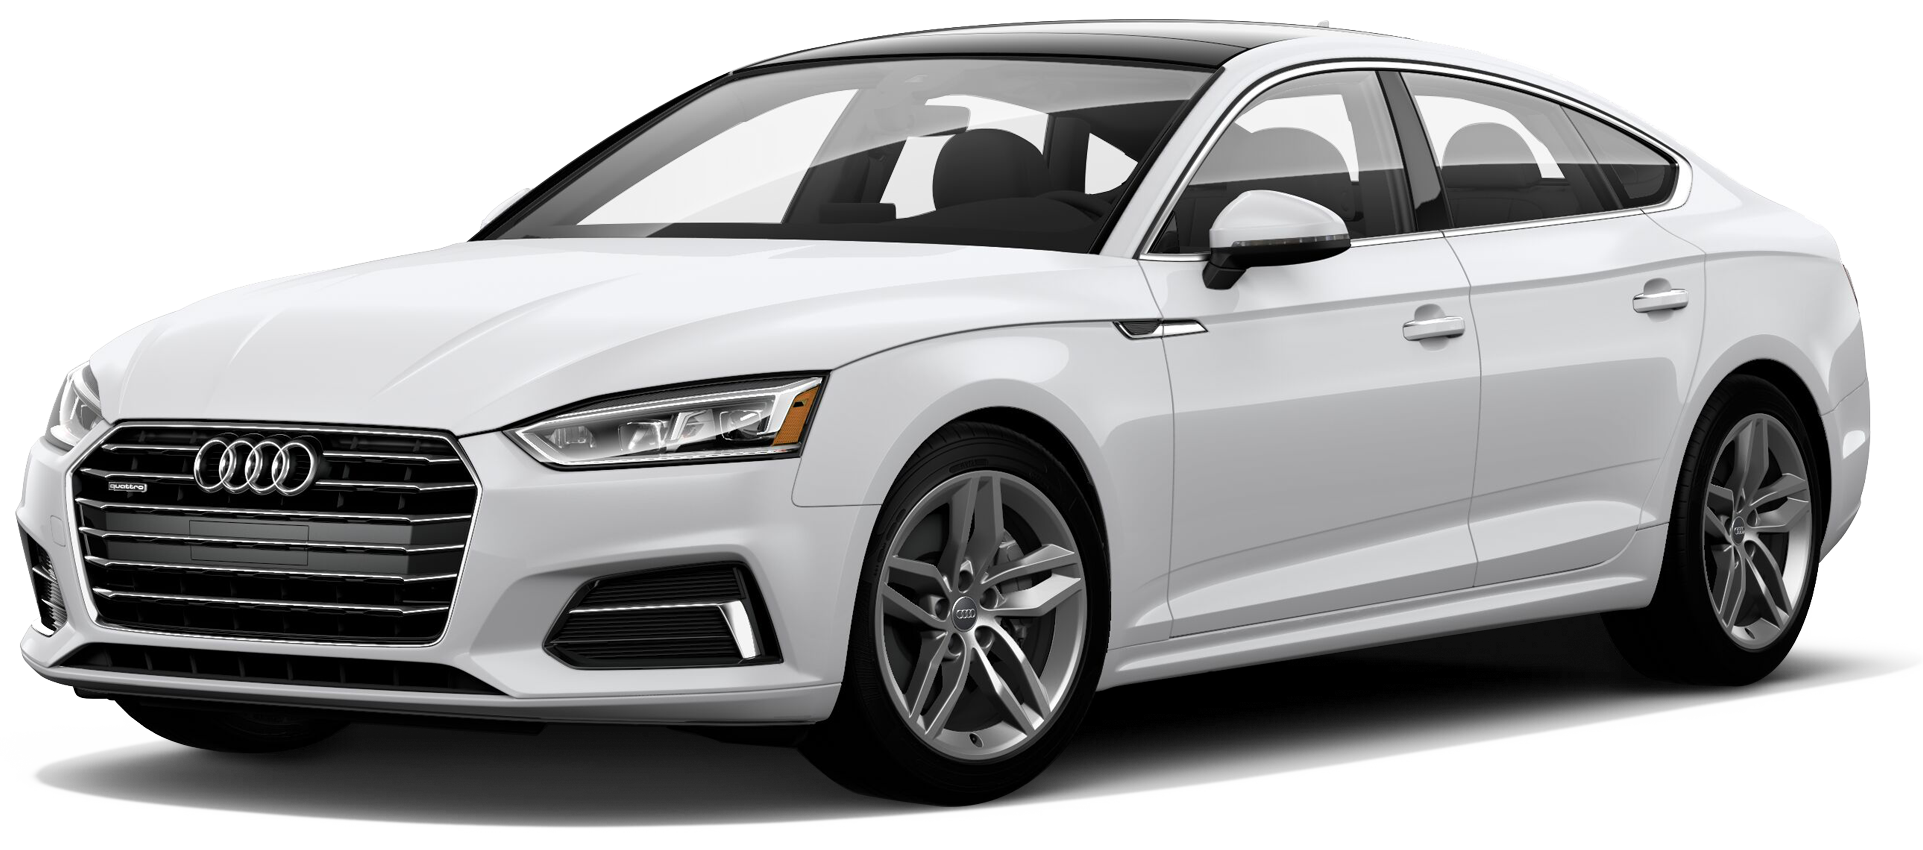 Audi A5 Lease Deal Image